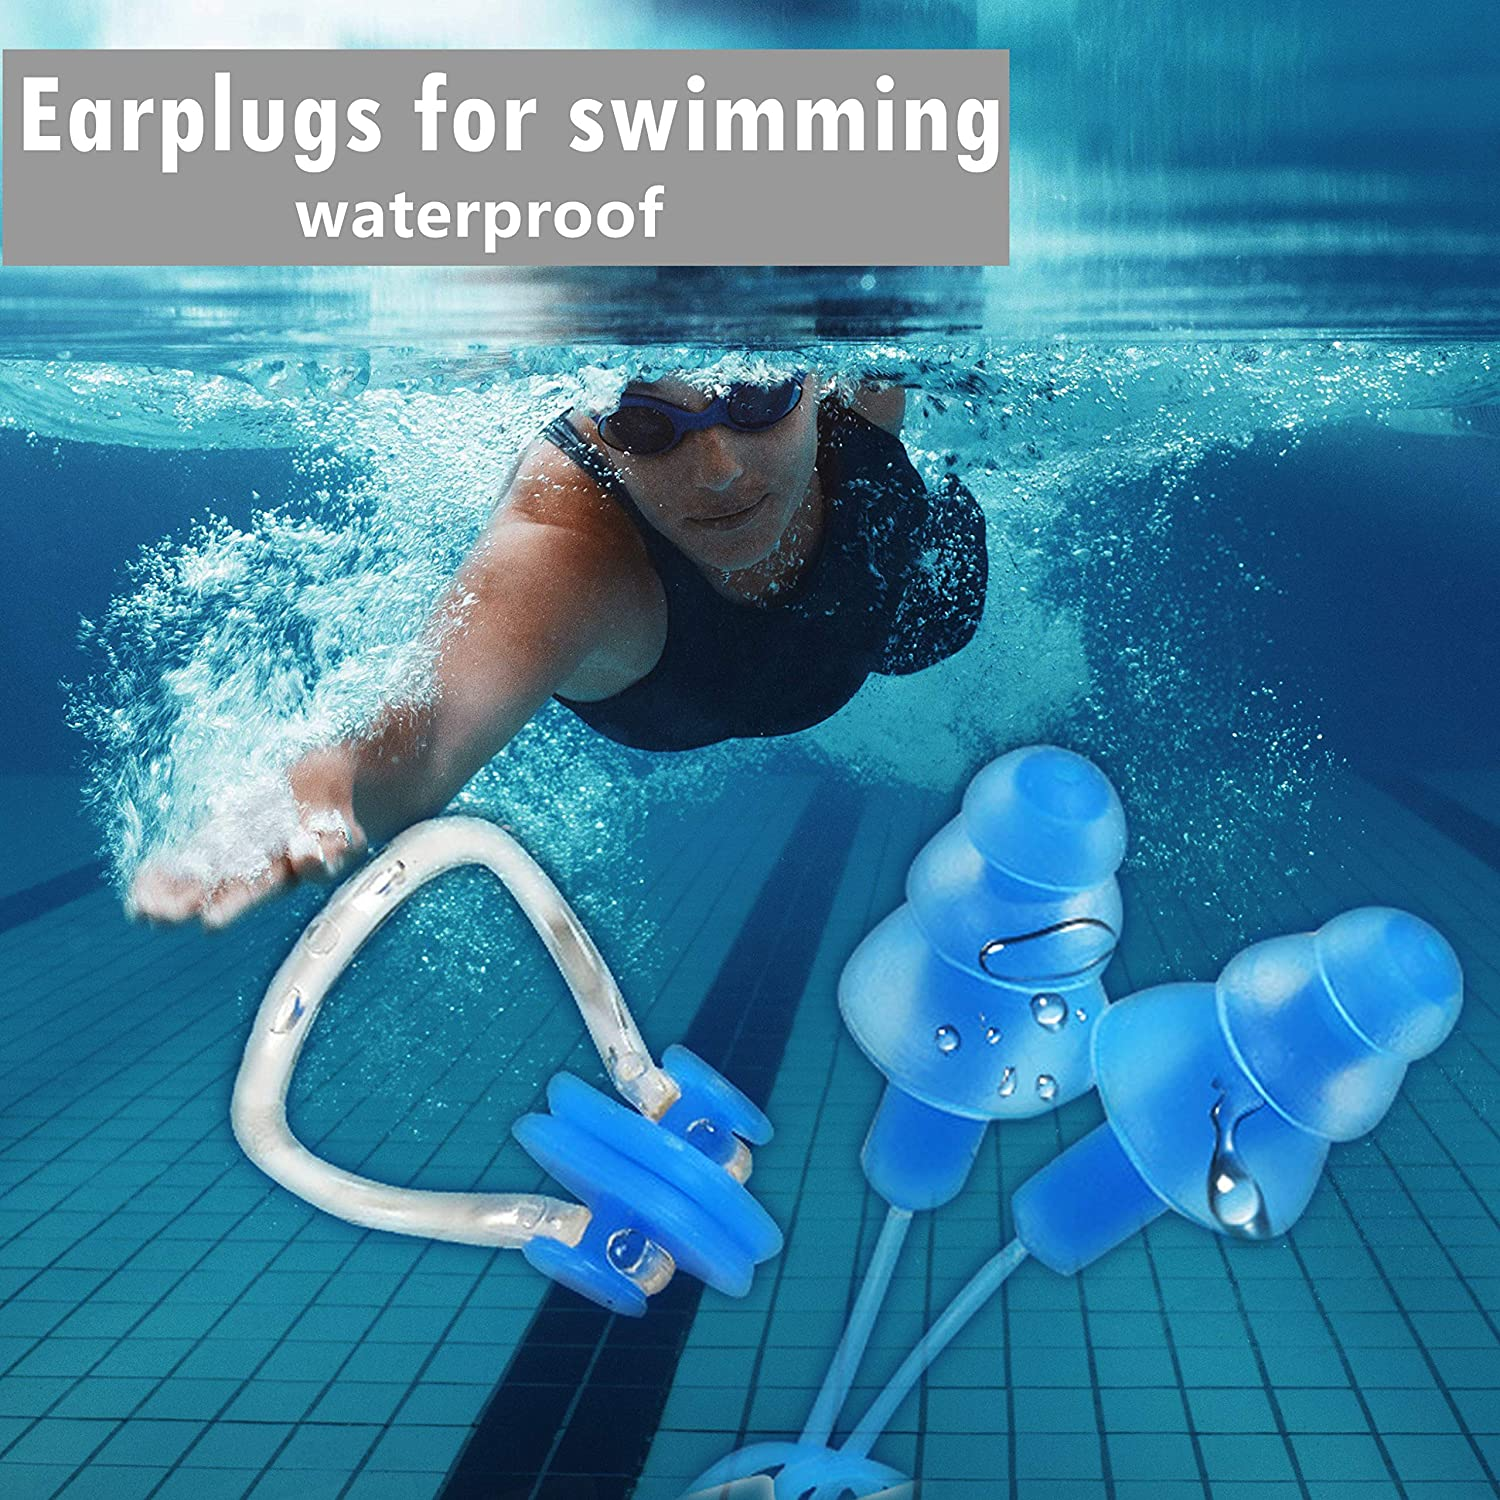 Crimmy Soft Silicone Earplugs Protection from Loud Sounds 2 Pairs Noise Cancelling Reusable Earplugs for Sleeping